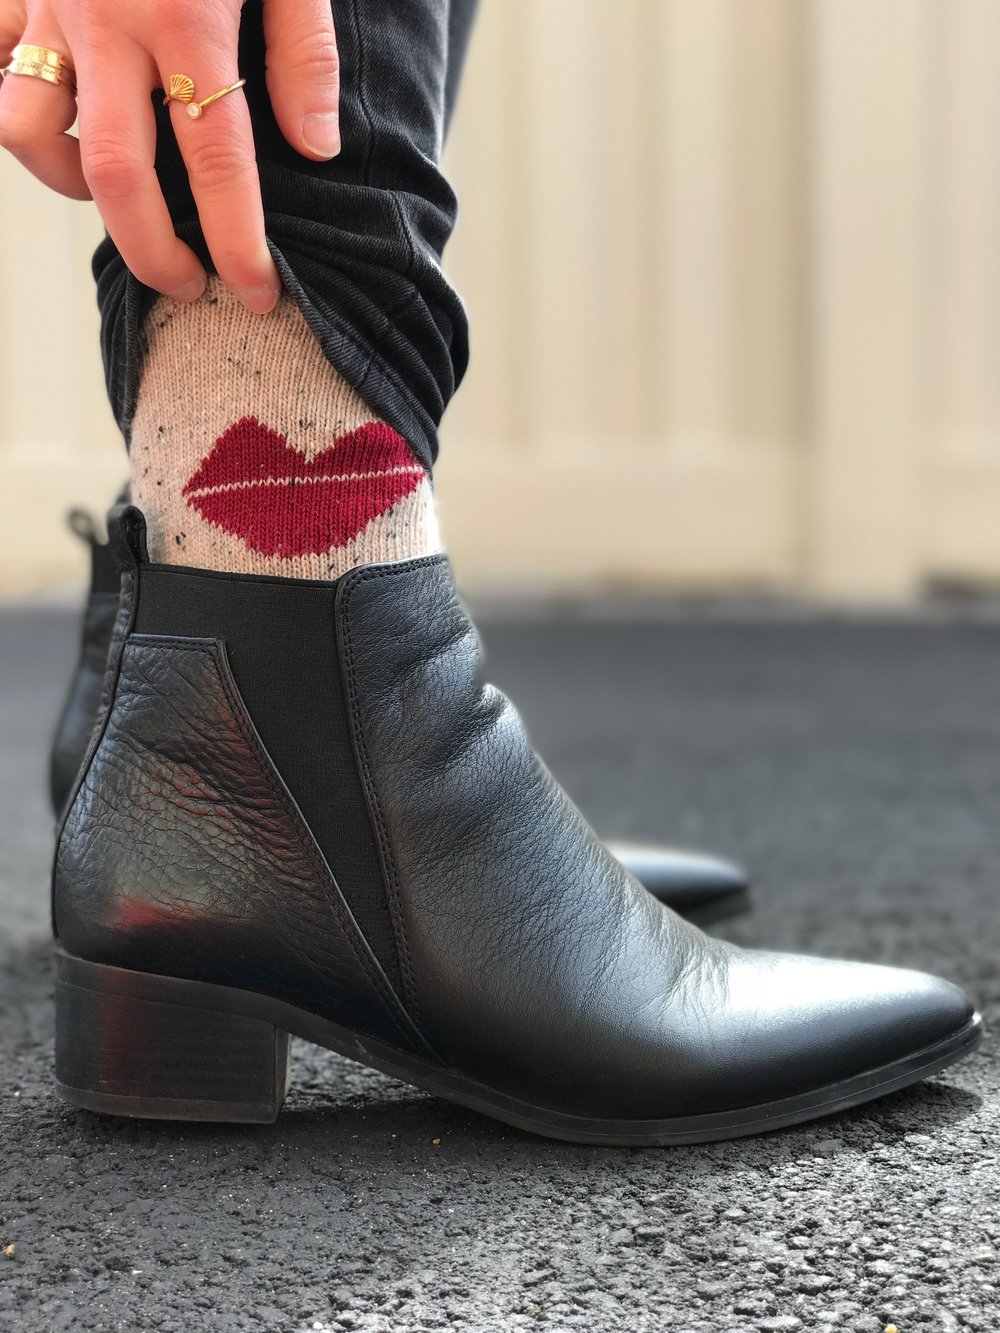 Marc Fisher boots ( similar ), Urban Outfitters  socks